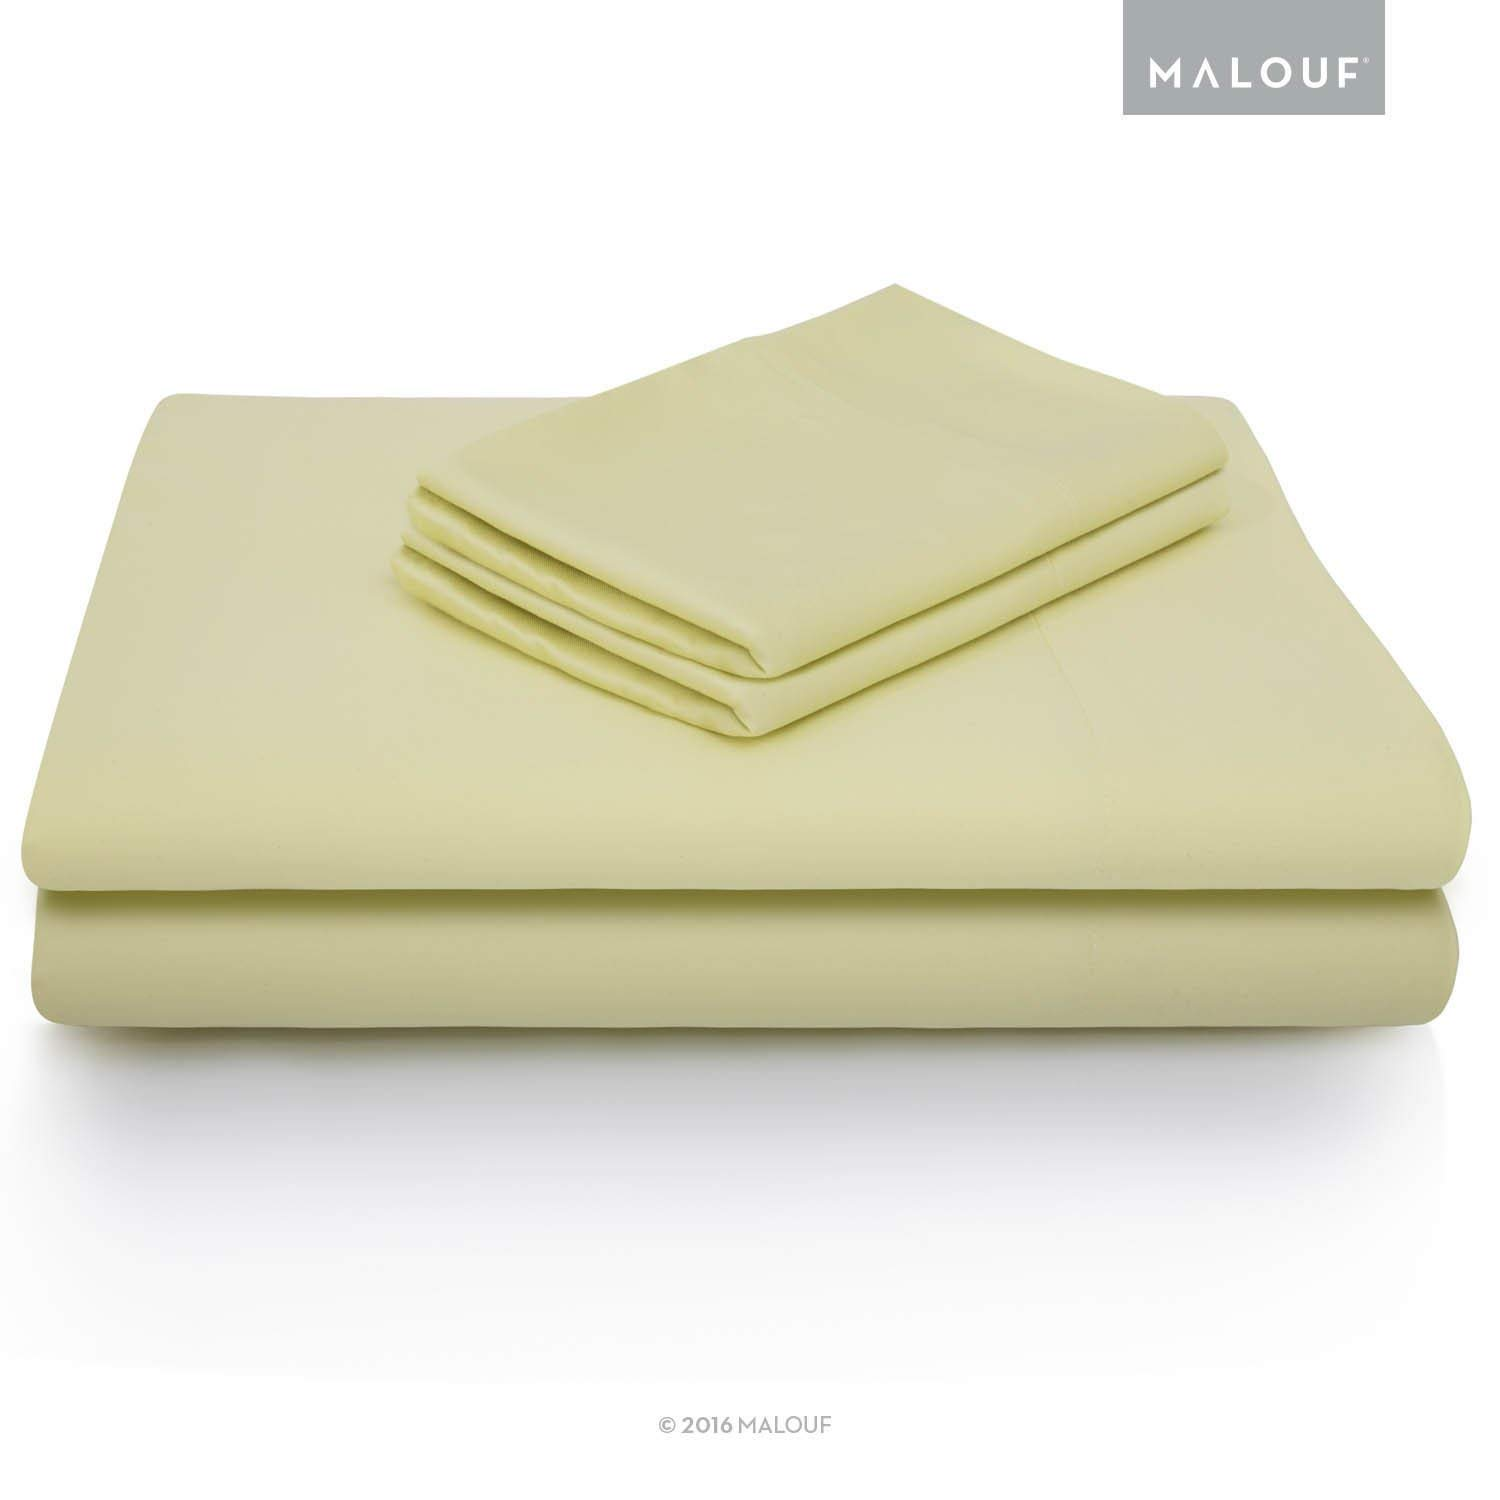 MALOUF 100/% Rayon from Bamboo Sheet Set Queen 4-pc Set Ash MA25QQASBS